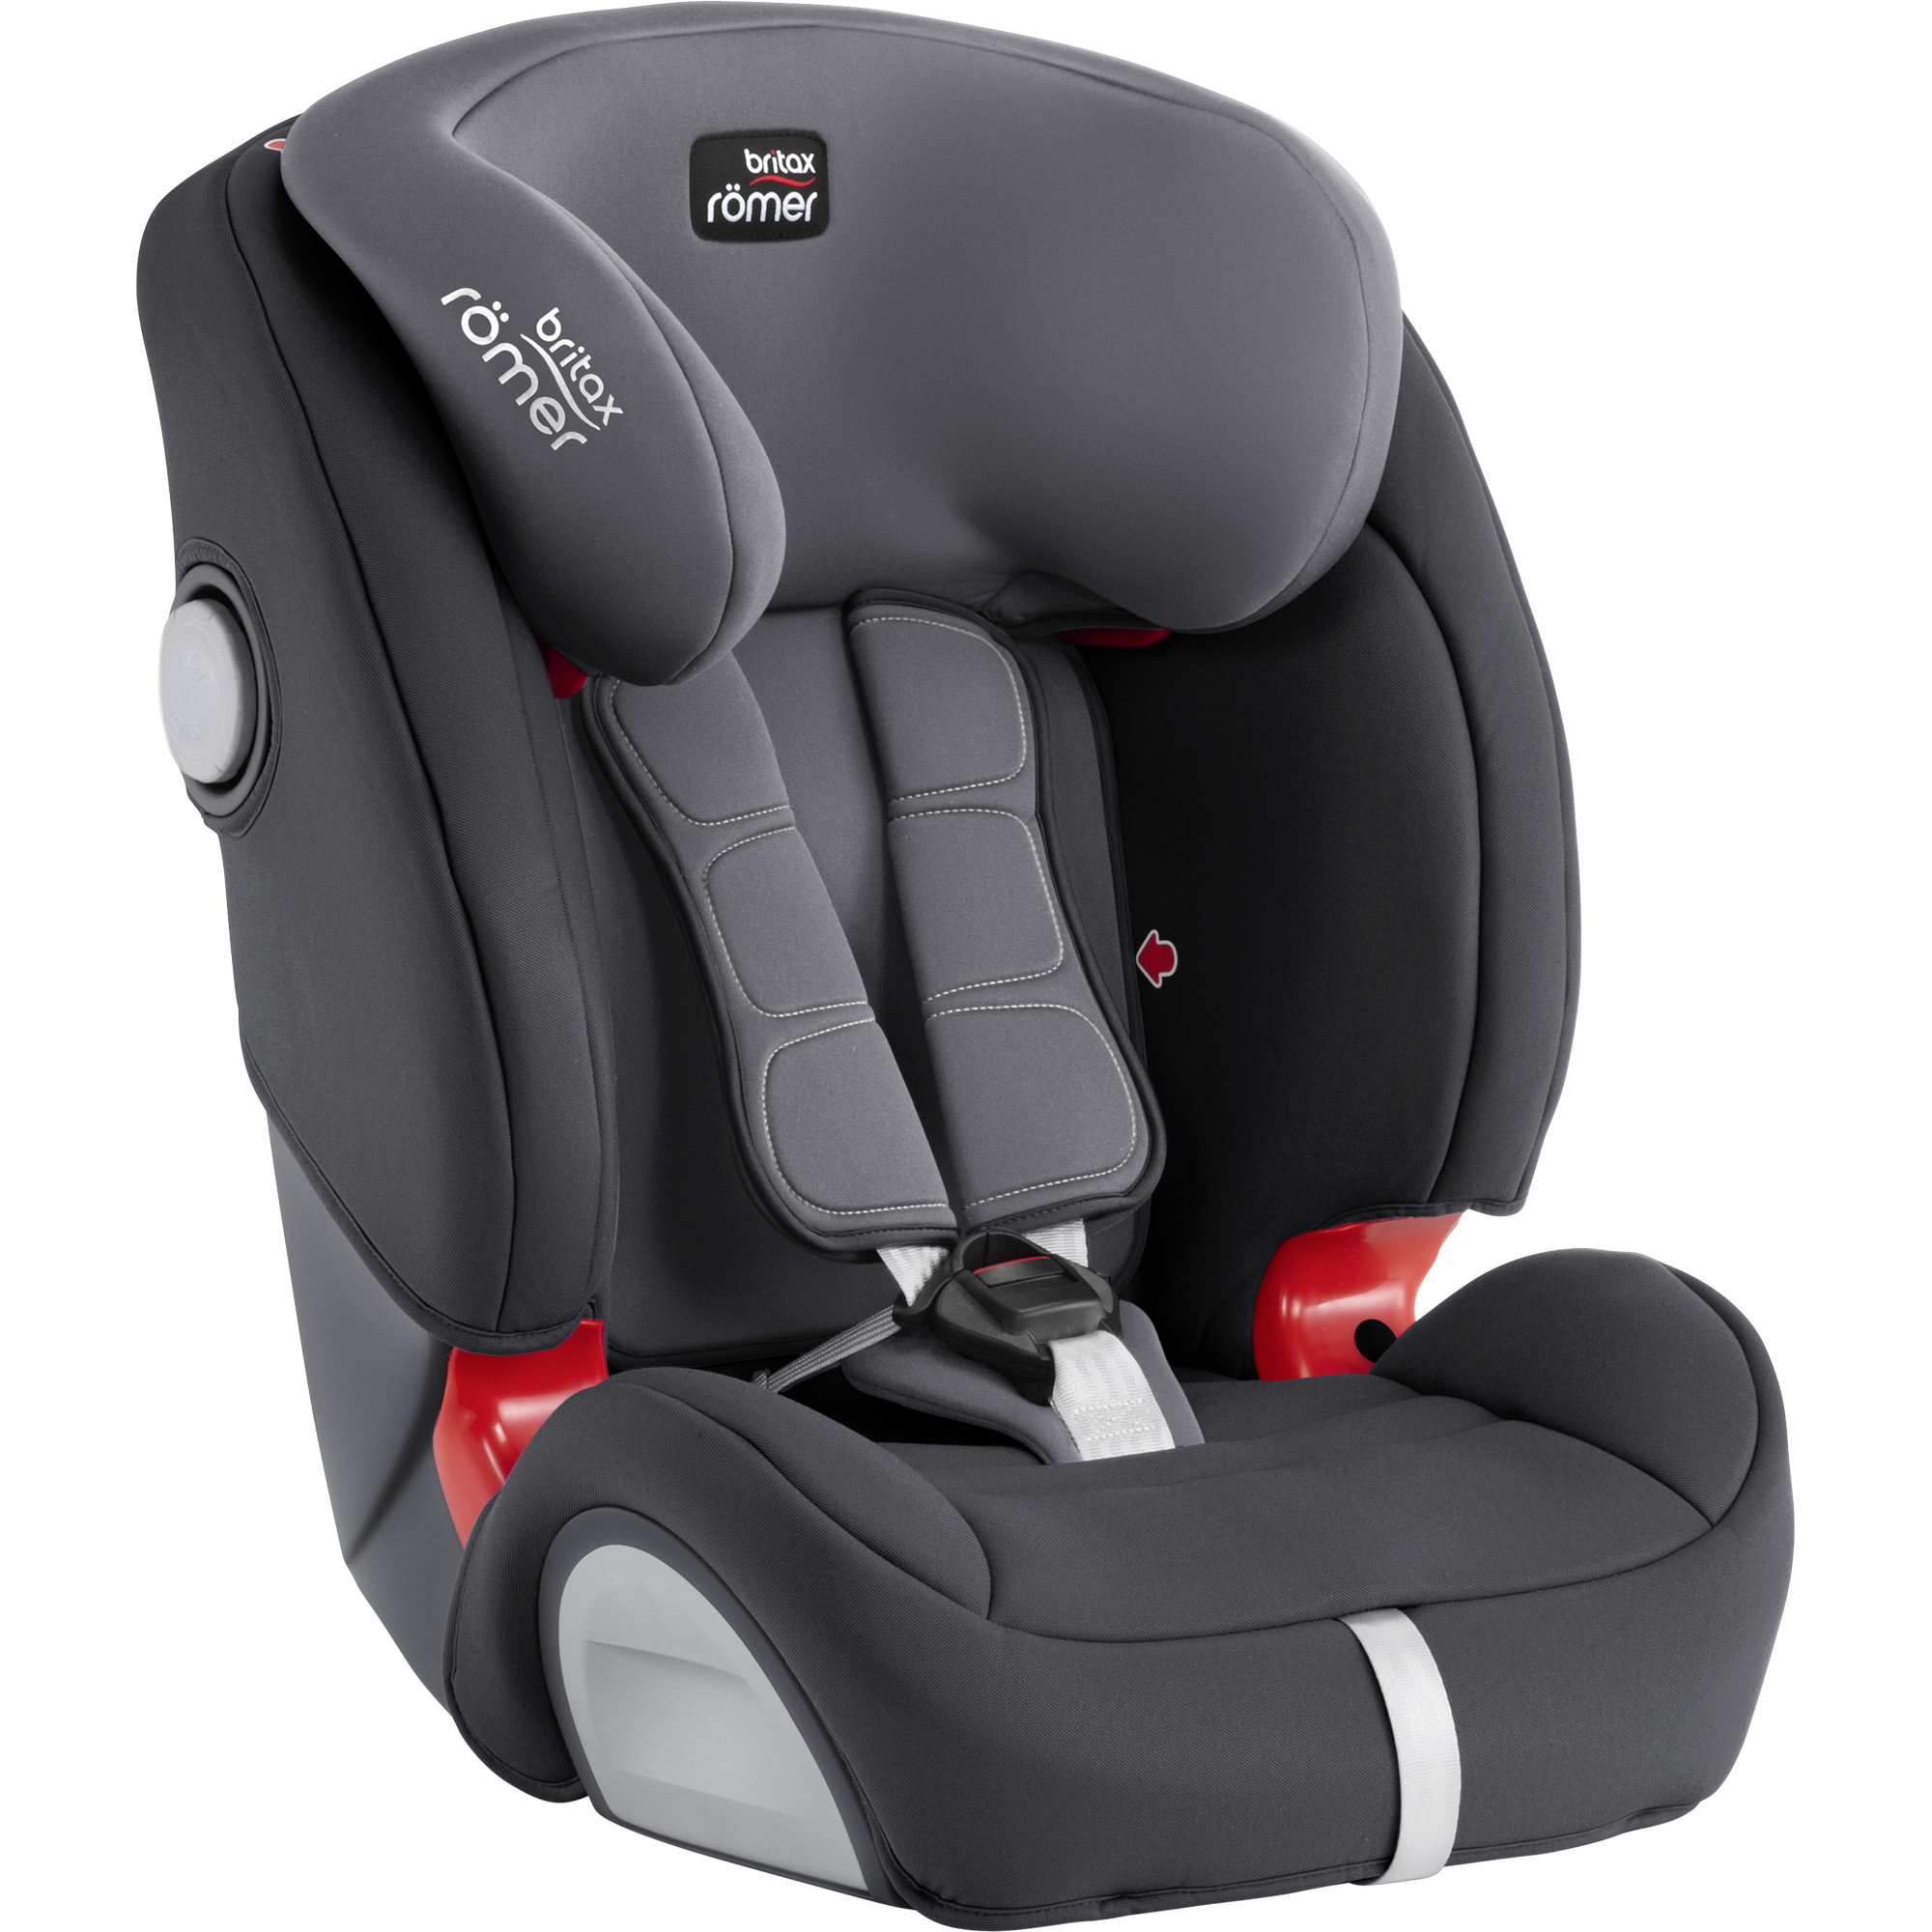 autoseda ka britax r mer evolva 1 2 3 sl sict storm grey. Black Bedroom Furniture Sets. Home Design Ideas